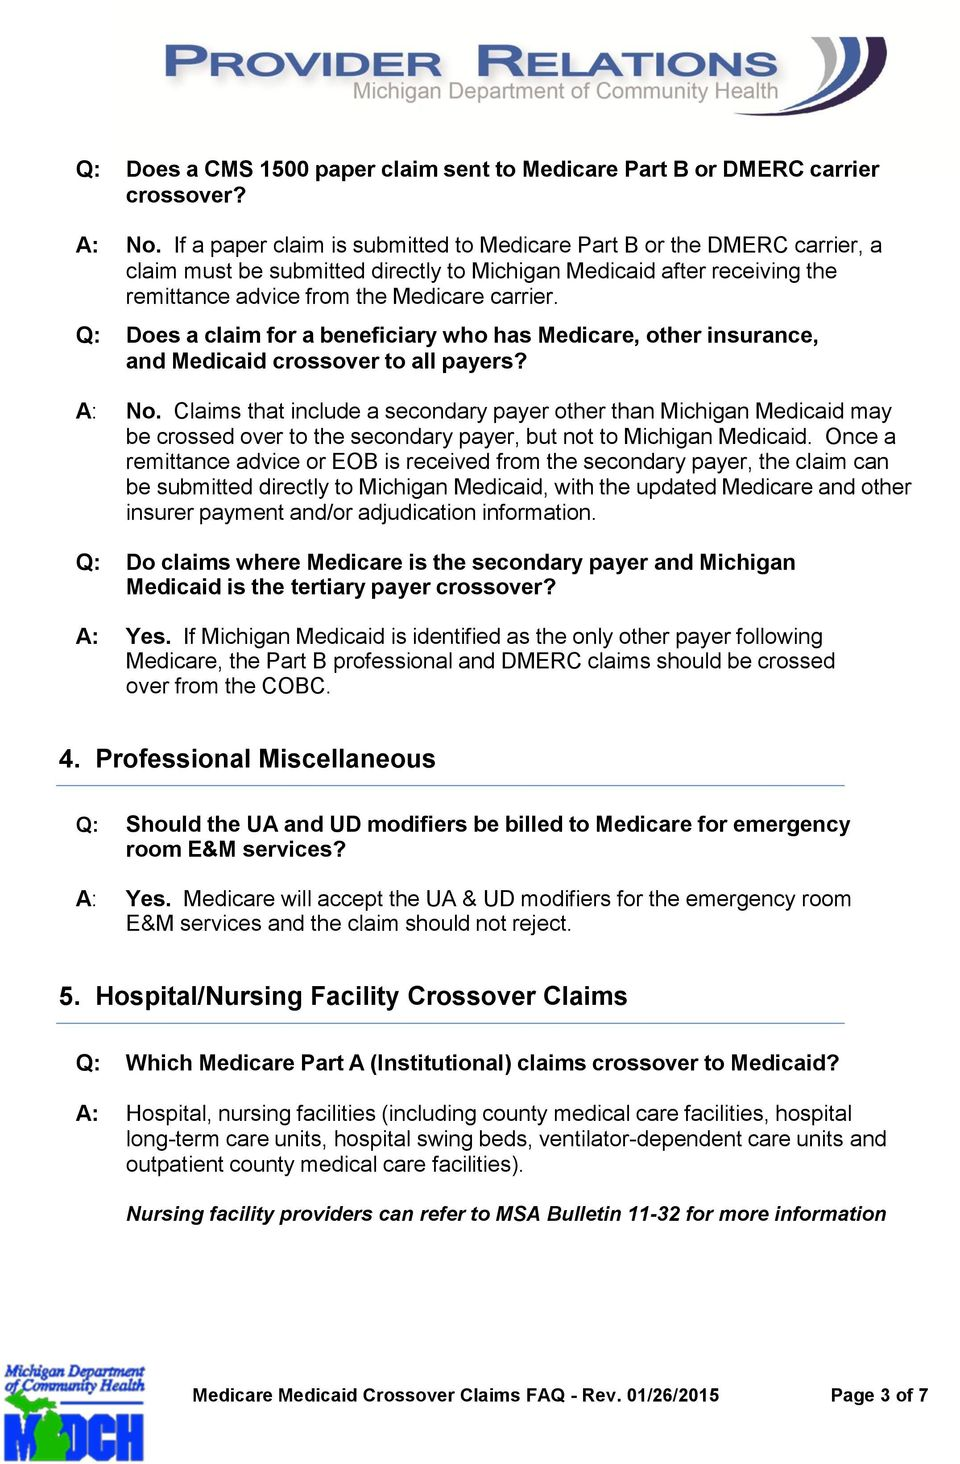 Q: Does a claim for a beneficiary who has Medicare, other insurance, and Medicaid crossover to all payers? A: No.